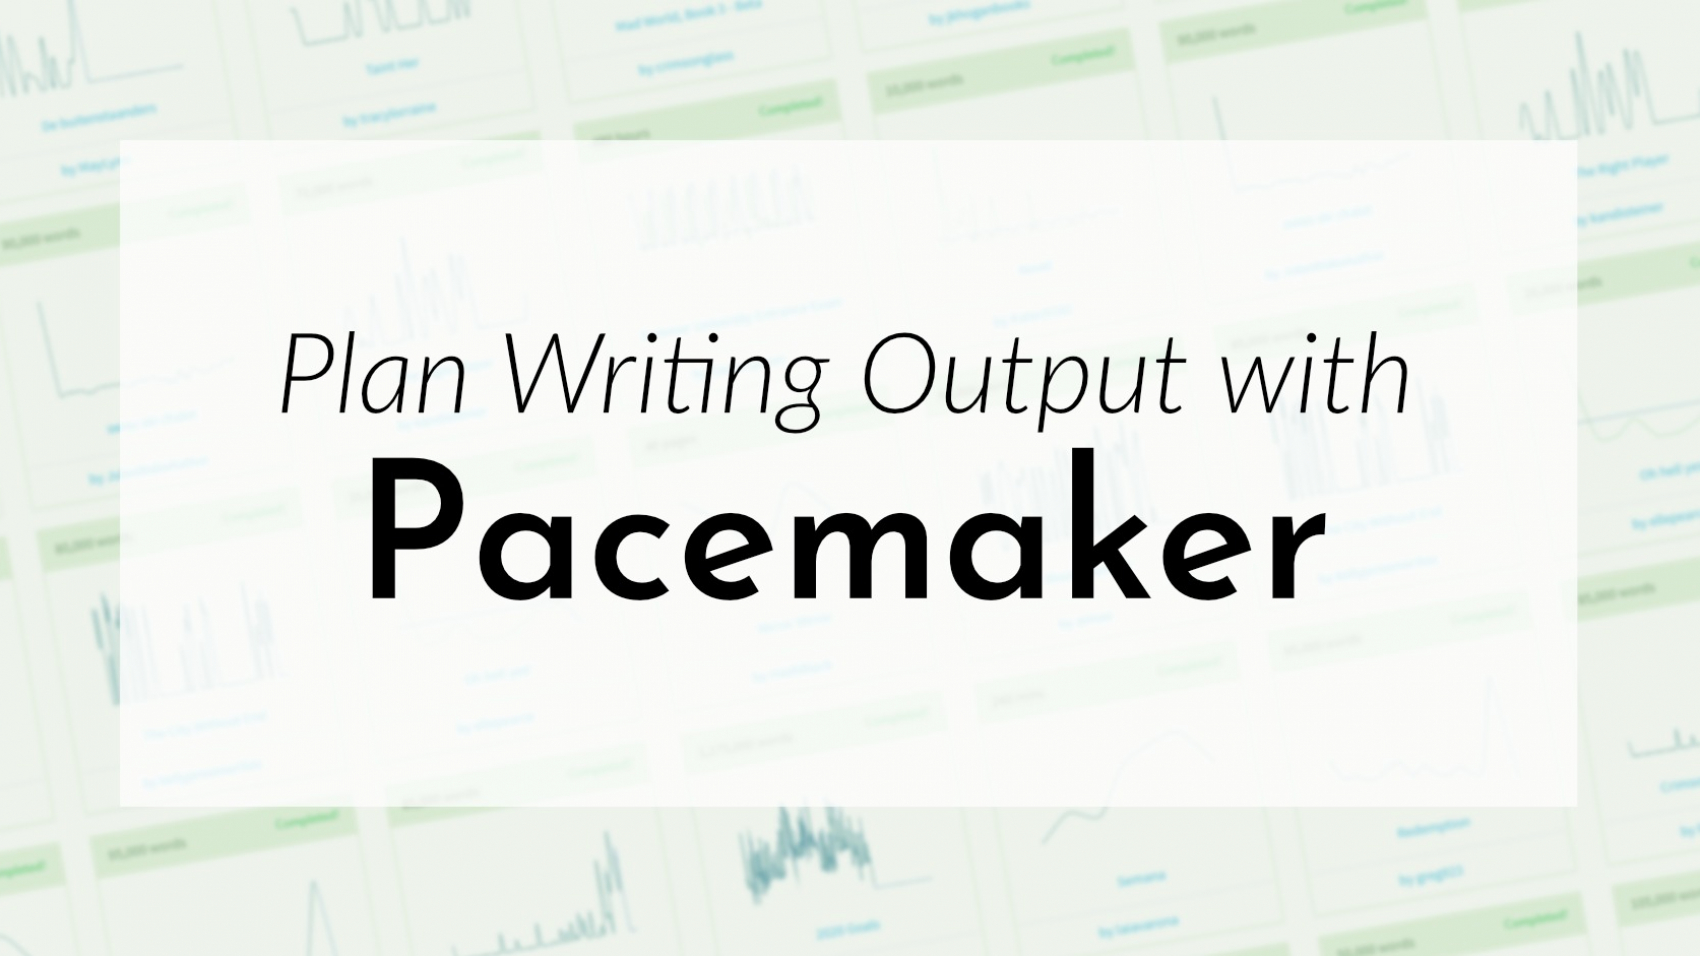 Banner: Plan writing output with Pacemaker